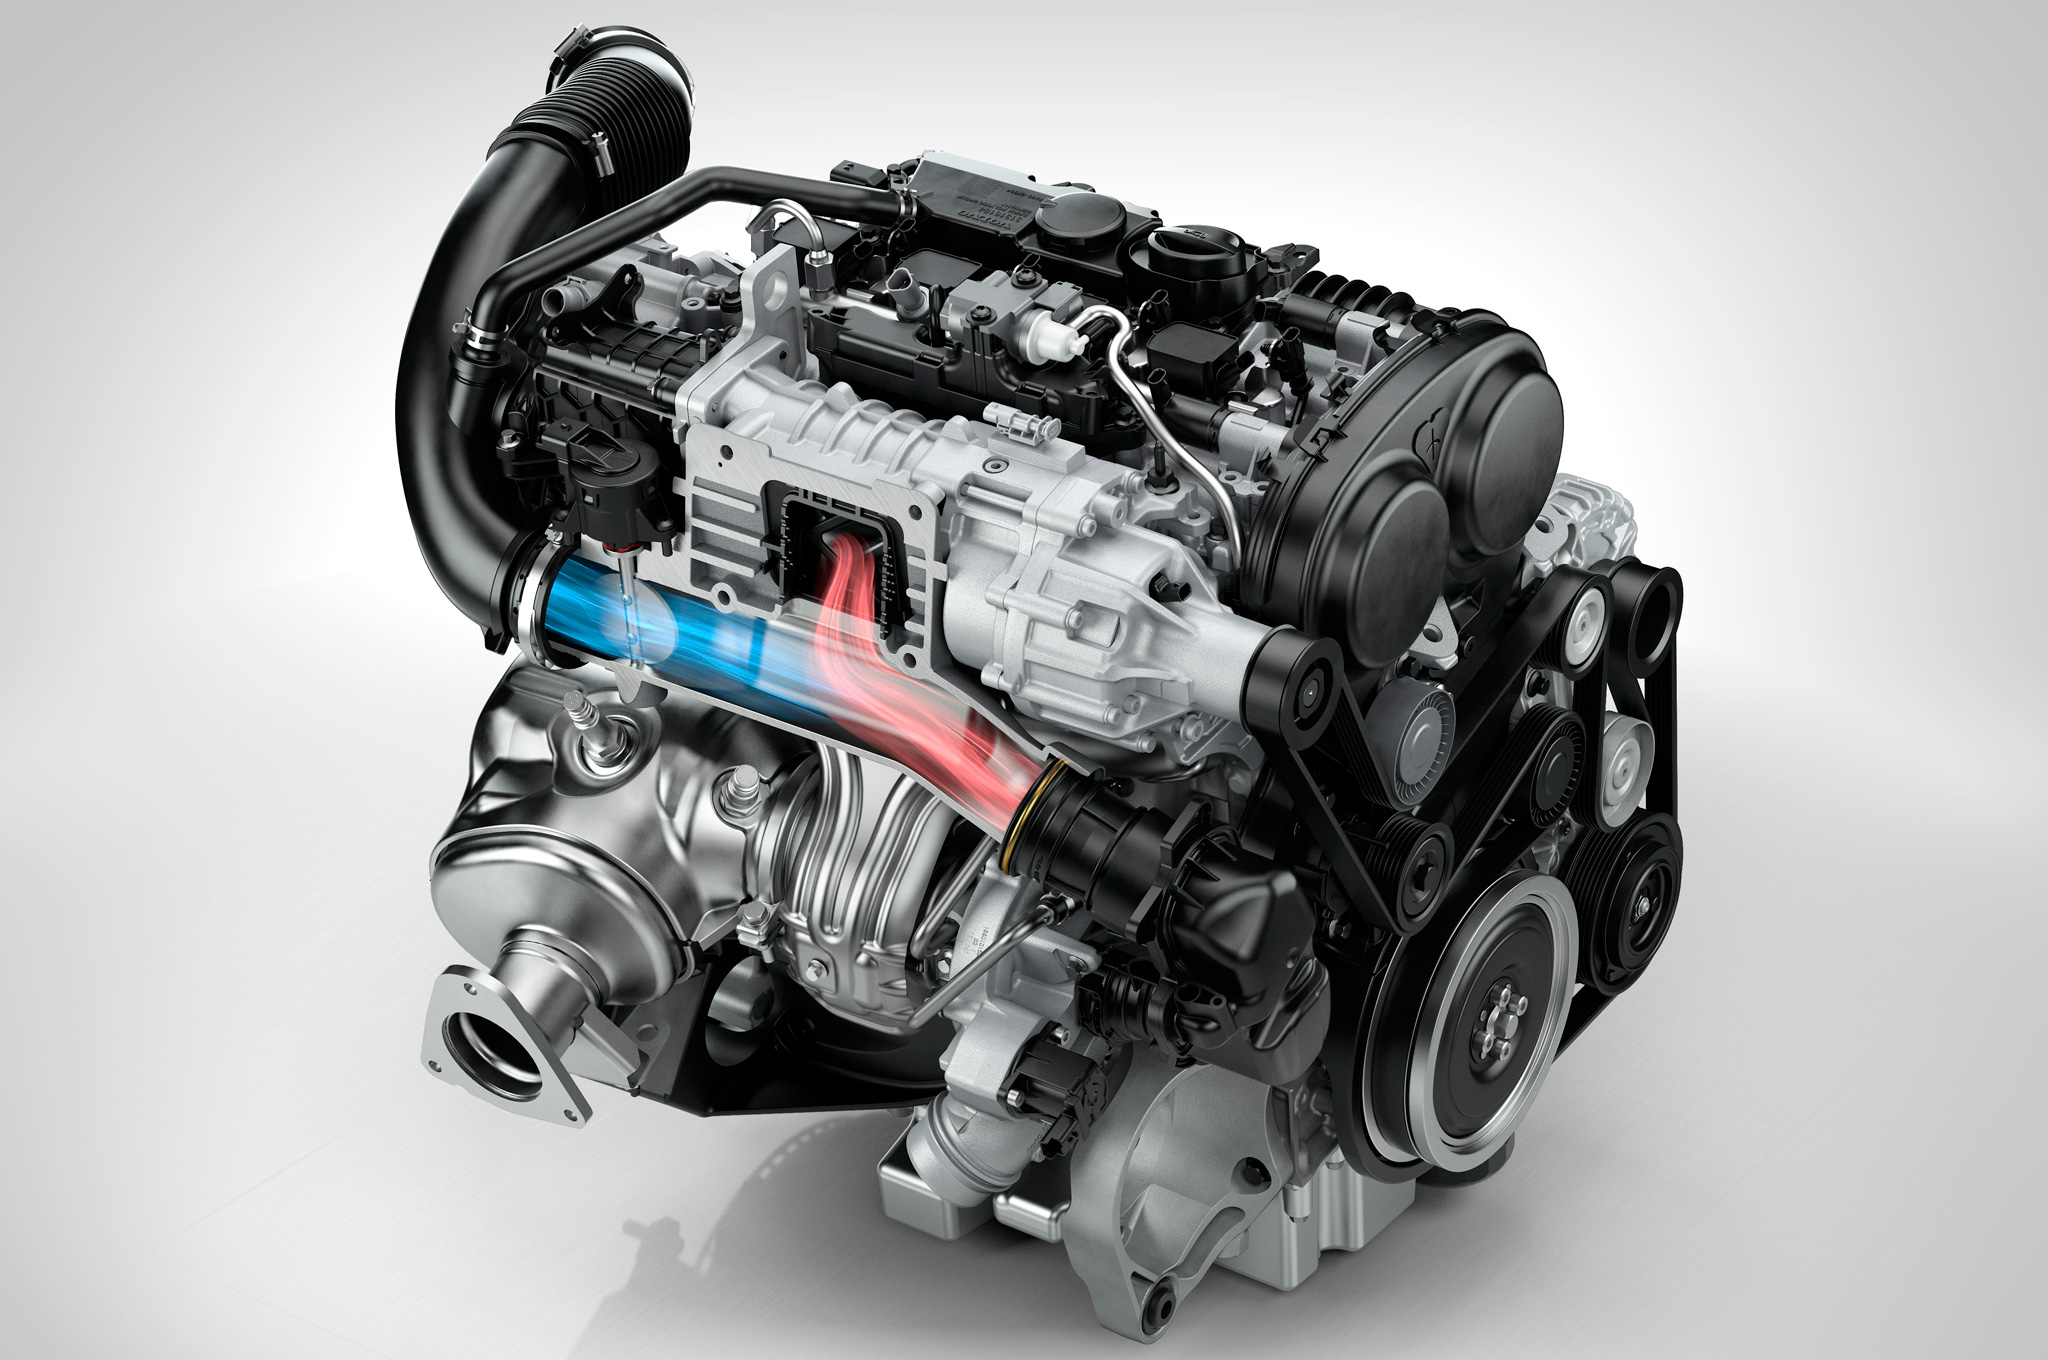 New Volvo Engine Family Includes 302hp Twincharged I4 Motor Trend. New Volvo Engine Family Includes 302hp Twincharged I4. Volvo. Volvo Auto Diagram At Scoala.co